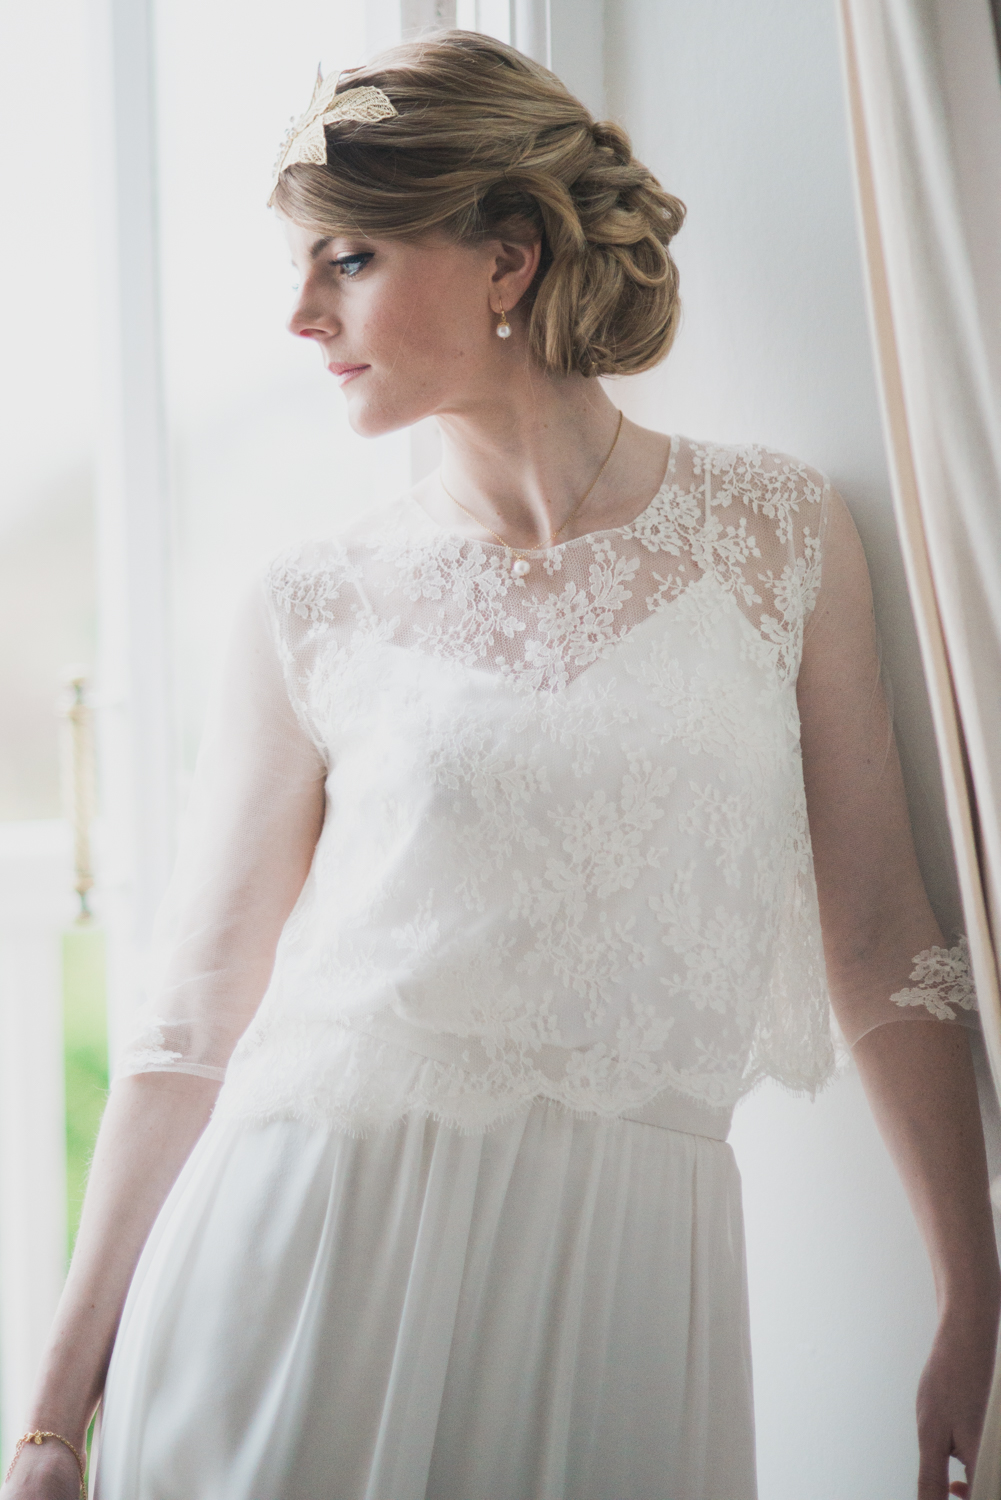 Dreamy and romantic dress